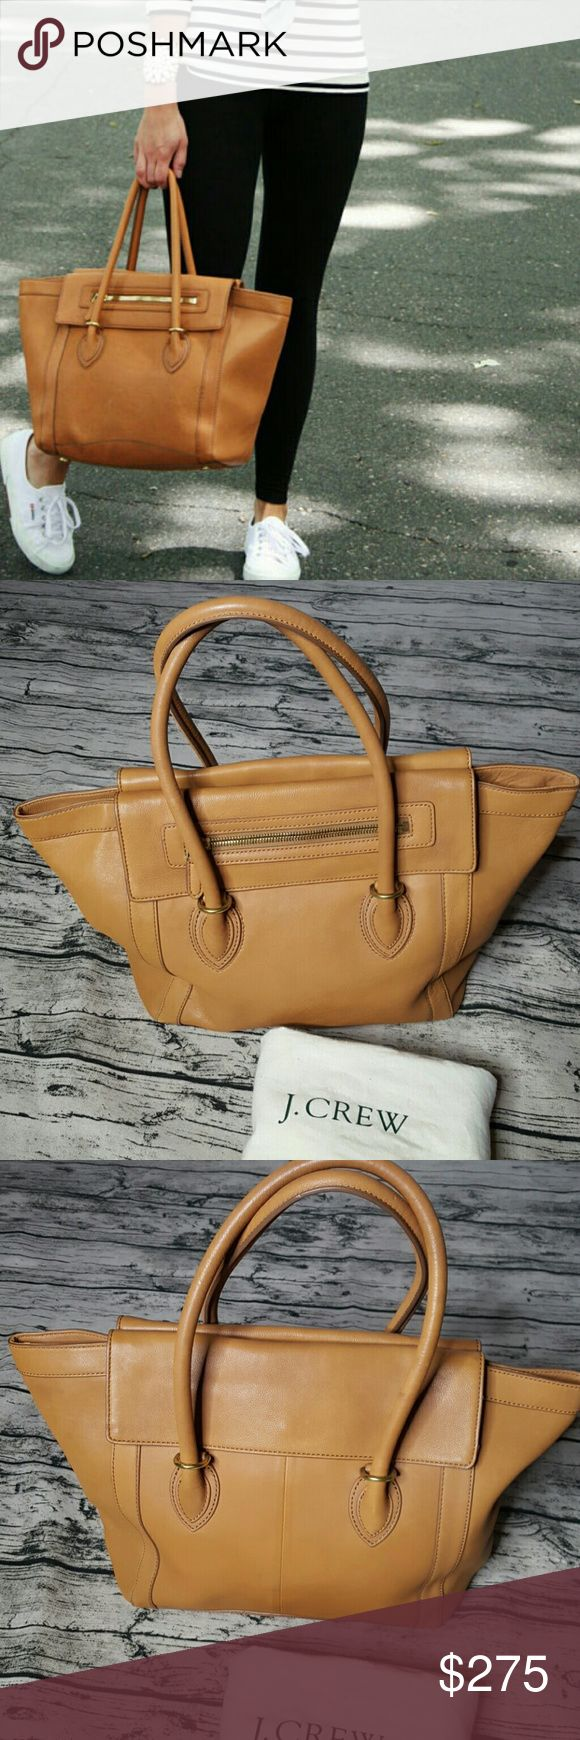 HTF J Crew Tillary Leather Tote bag Used but still lots of life left.  Comes with dust bag. No trades. Offers only thru offer button. My favorite bag, hard to let go but need to downsize my collection. J. Crew Bags Totes